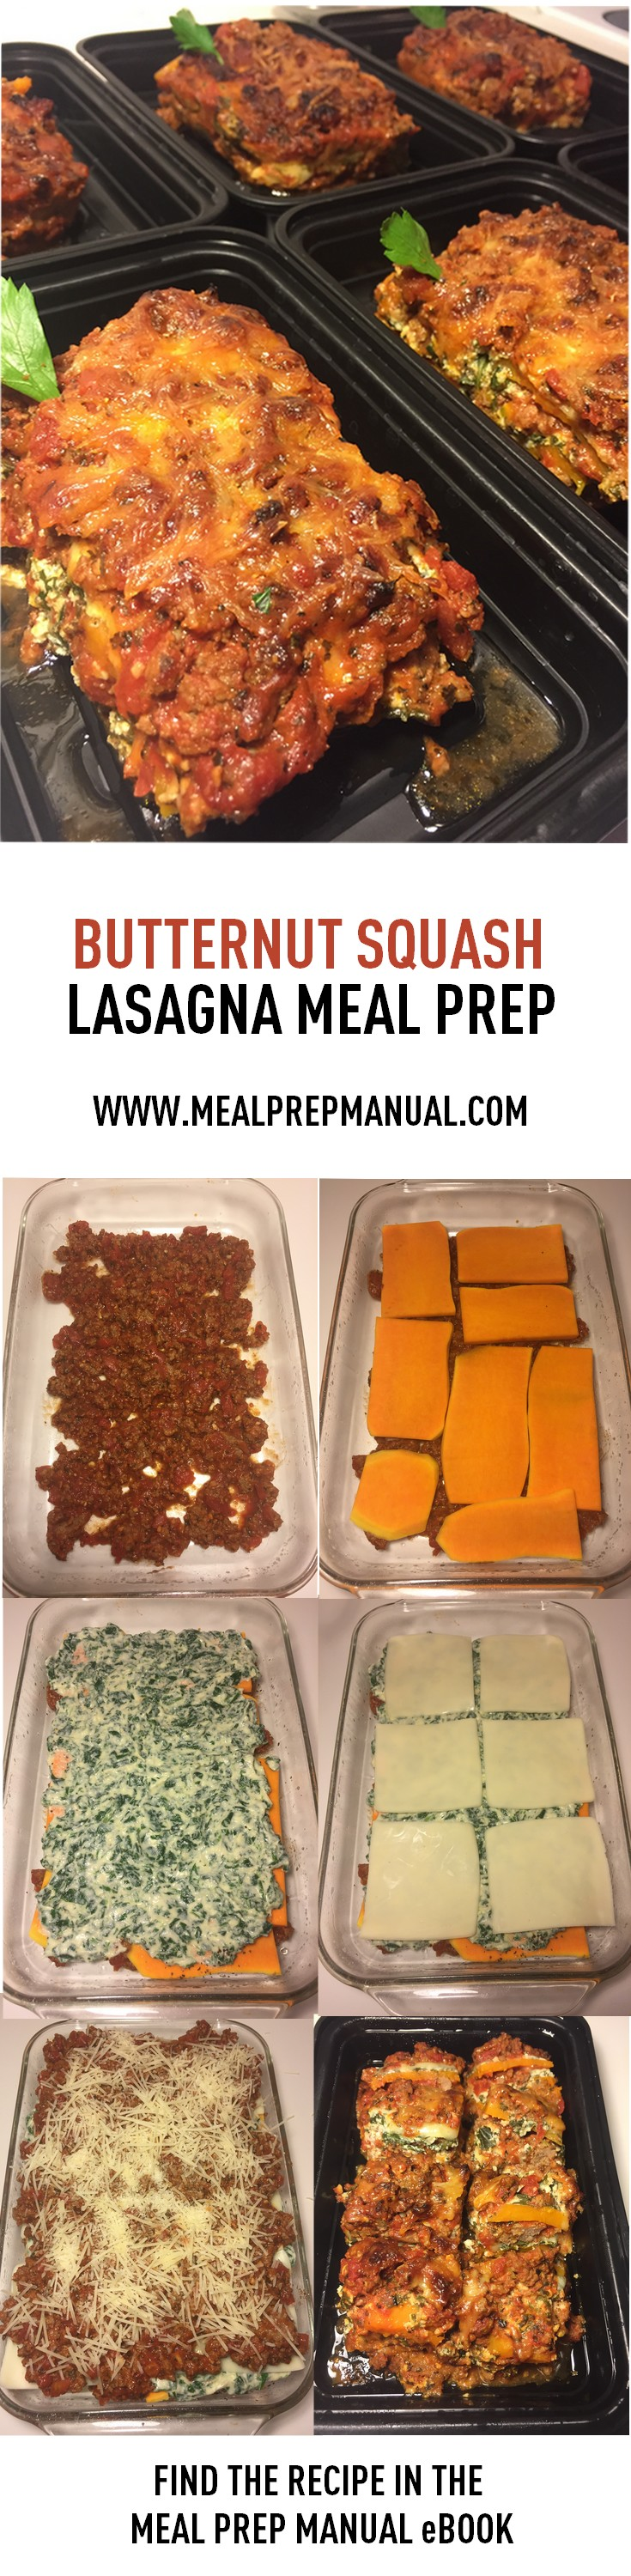 Download the meal prep manual ebook today meal prep recipes meal prep ideas to help you eat healthier find 30 meal prep recipes in the meal prep manual ebook forumfinder Choice Image